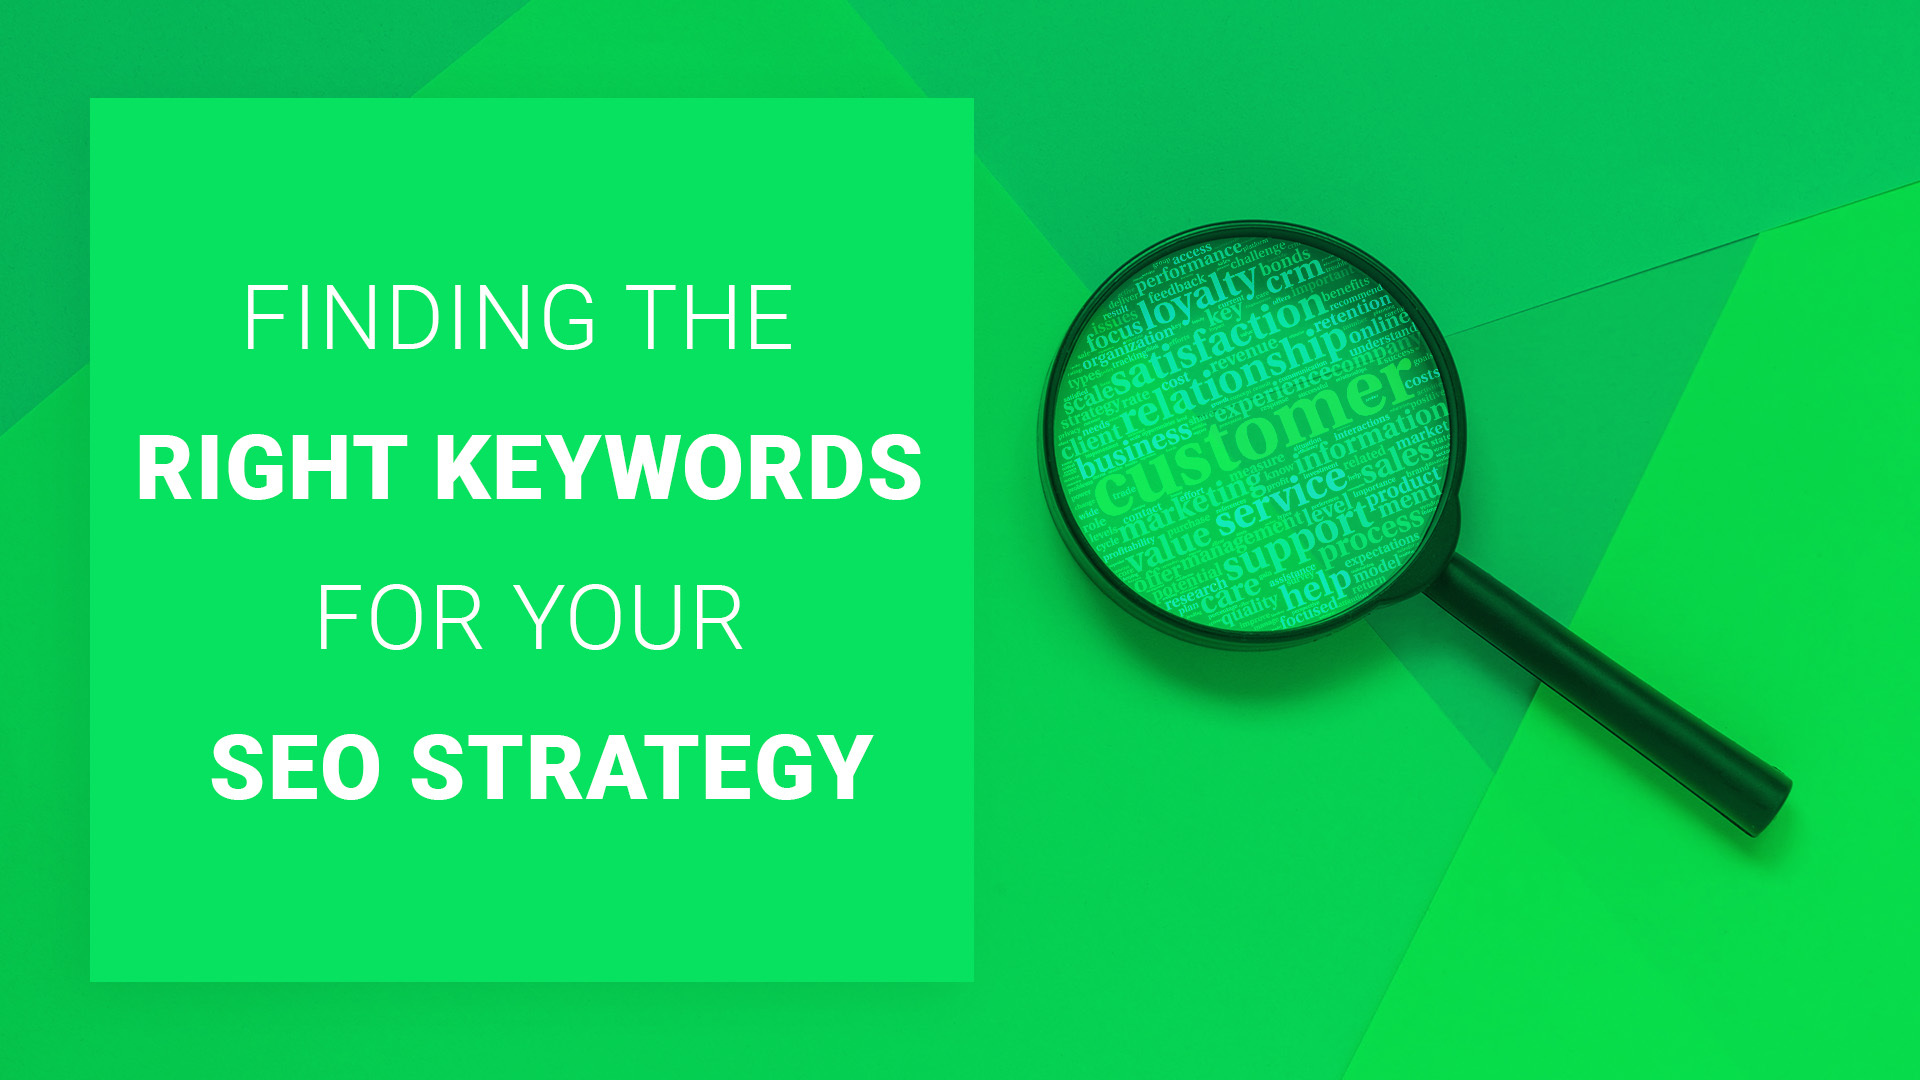 Finding The Right Keywords for Your SEO Strategy